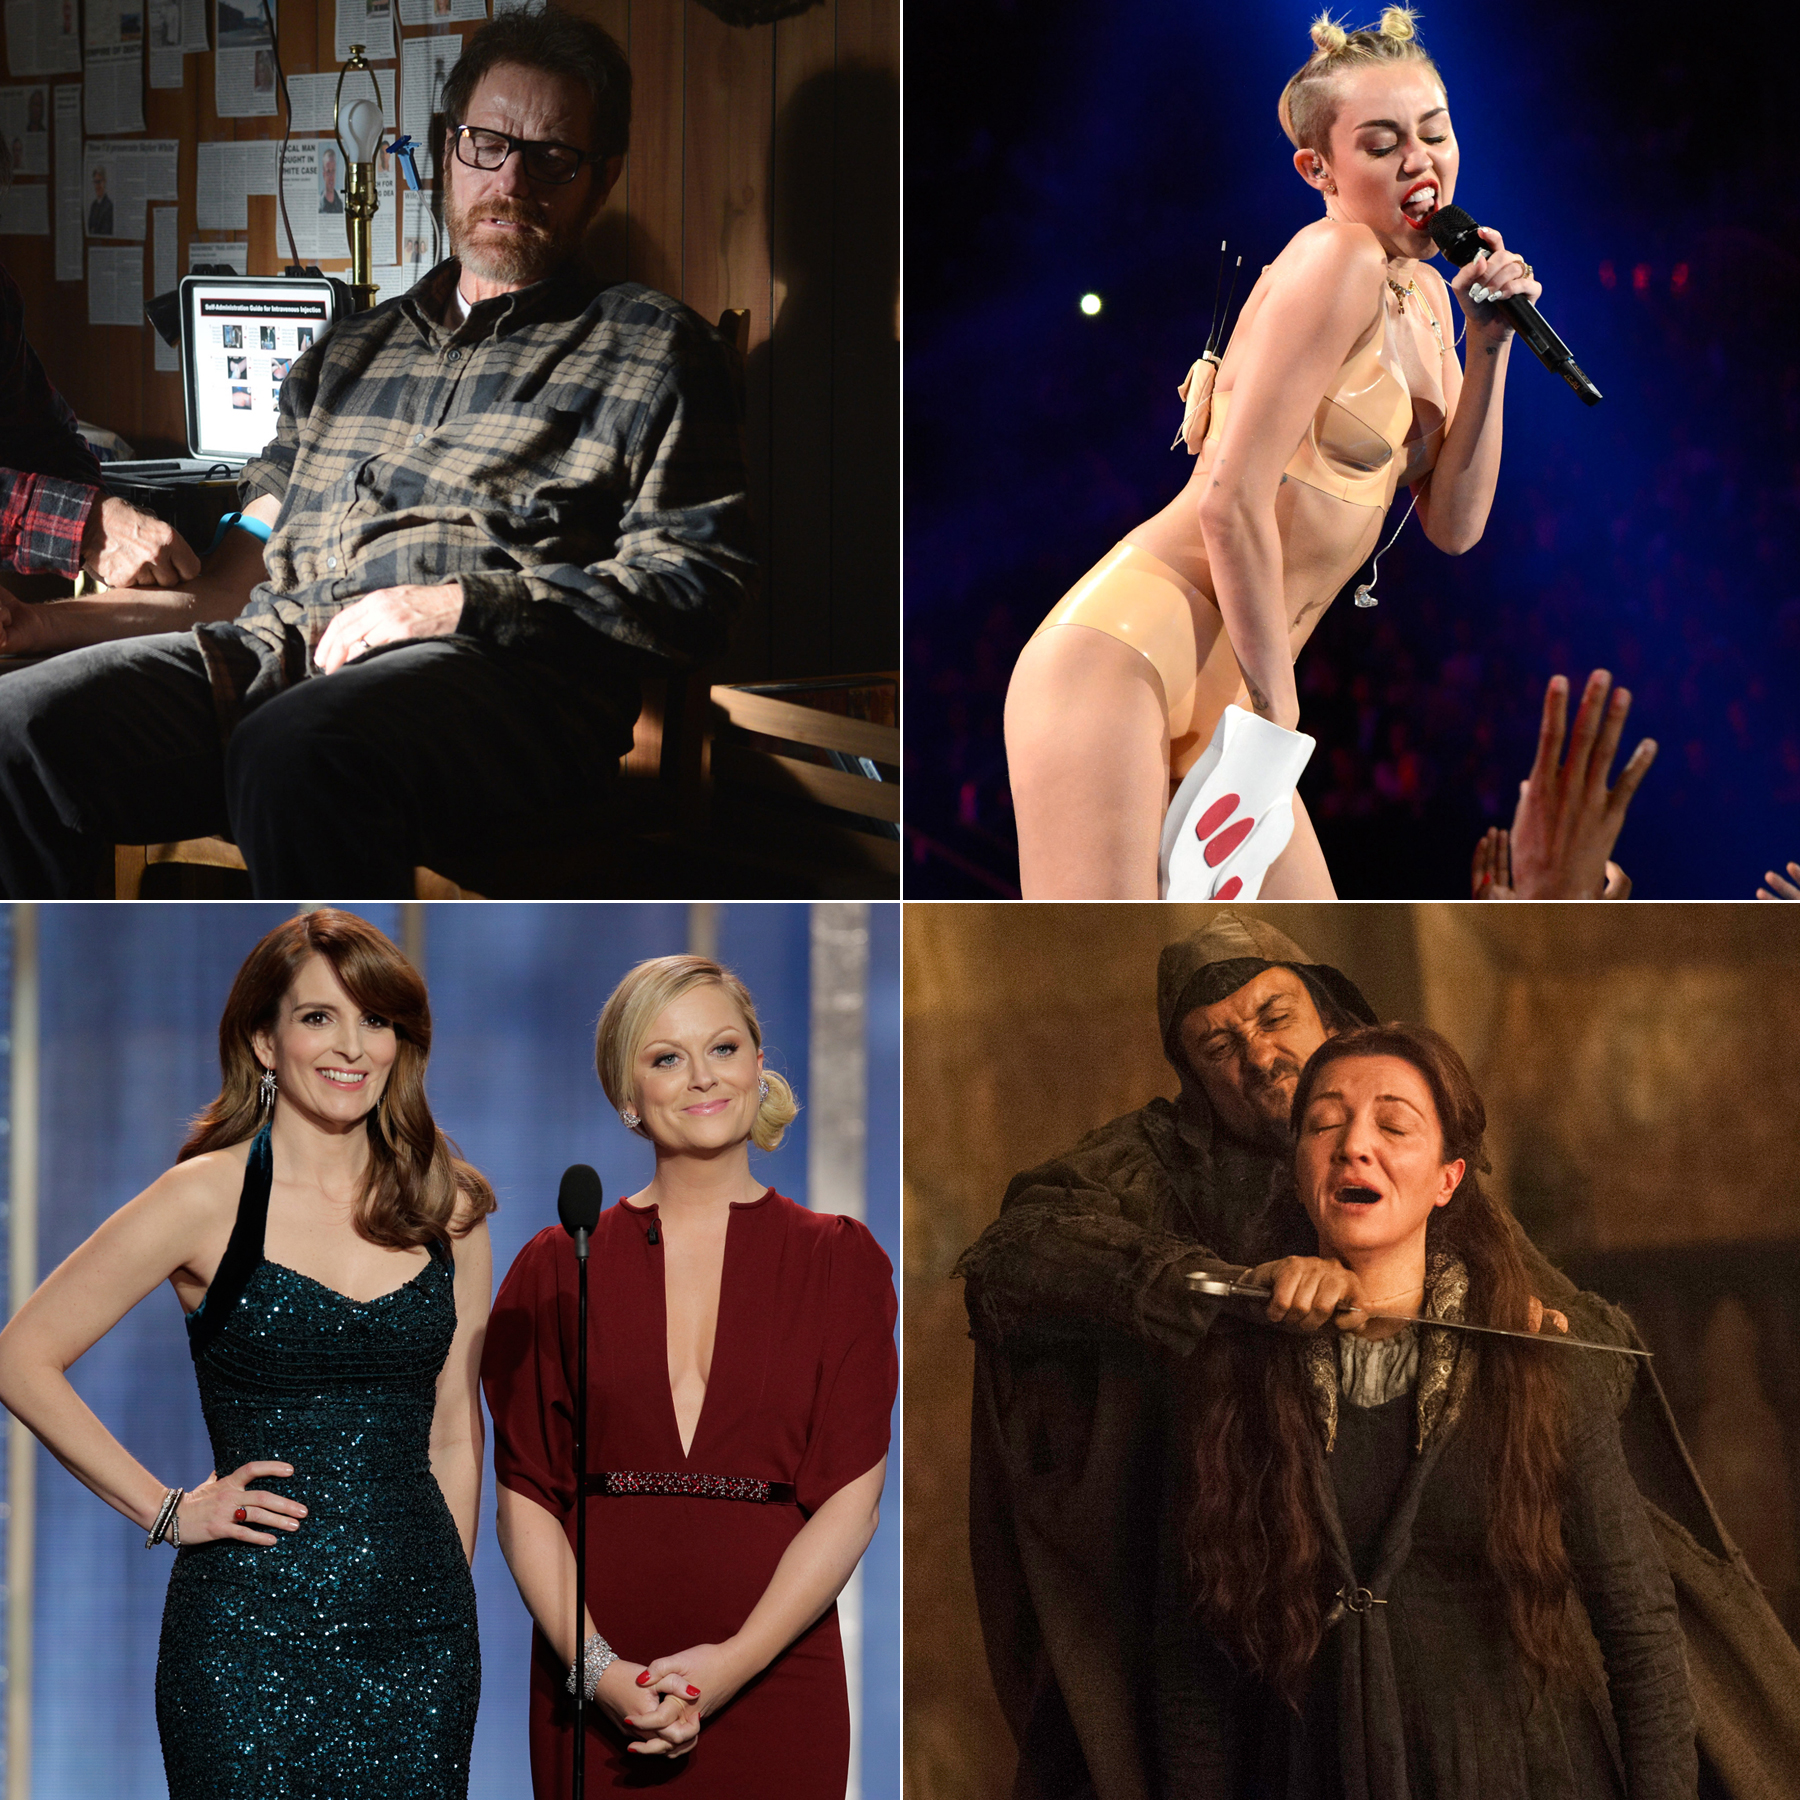 20 Best TV Moments of 2013